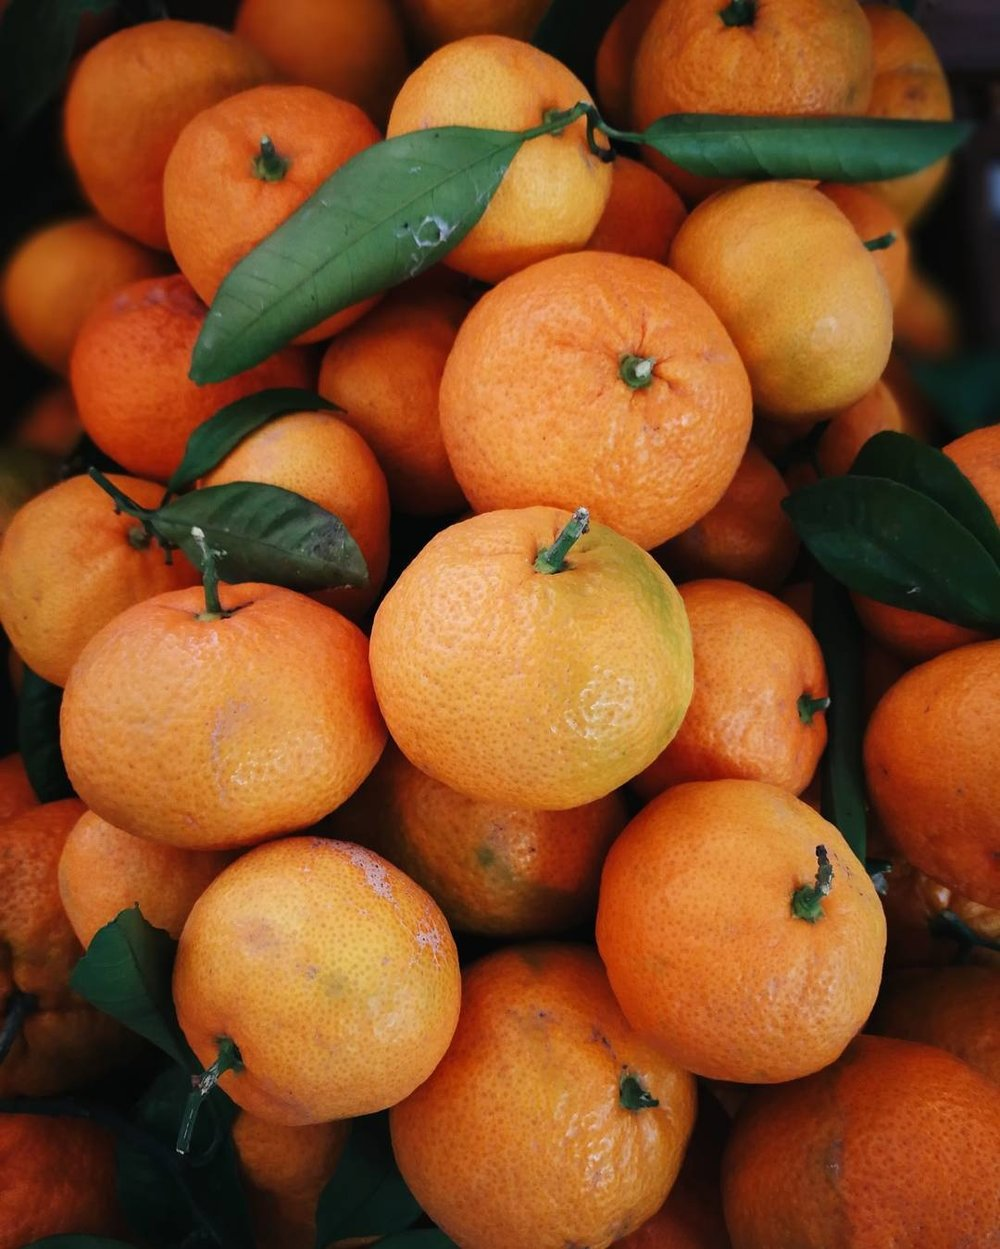 ***OUT OF SEASON***Tangerines & Mandarins - Algerian/Clementine Tangerines (sweet with seeds) & Satsuma Mandarins (sweet-tangy and seedless).